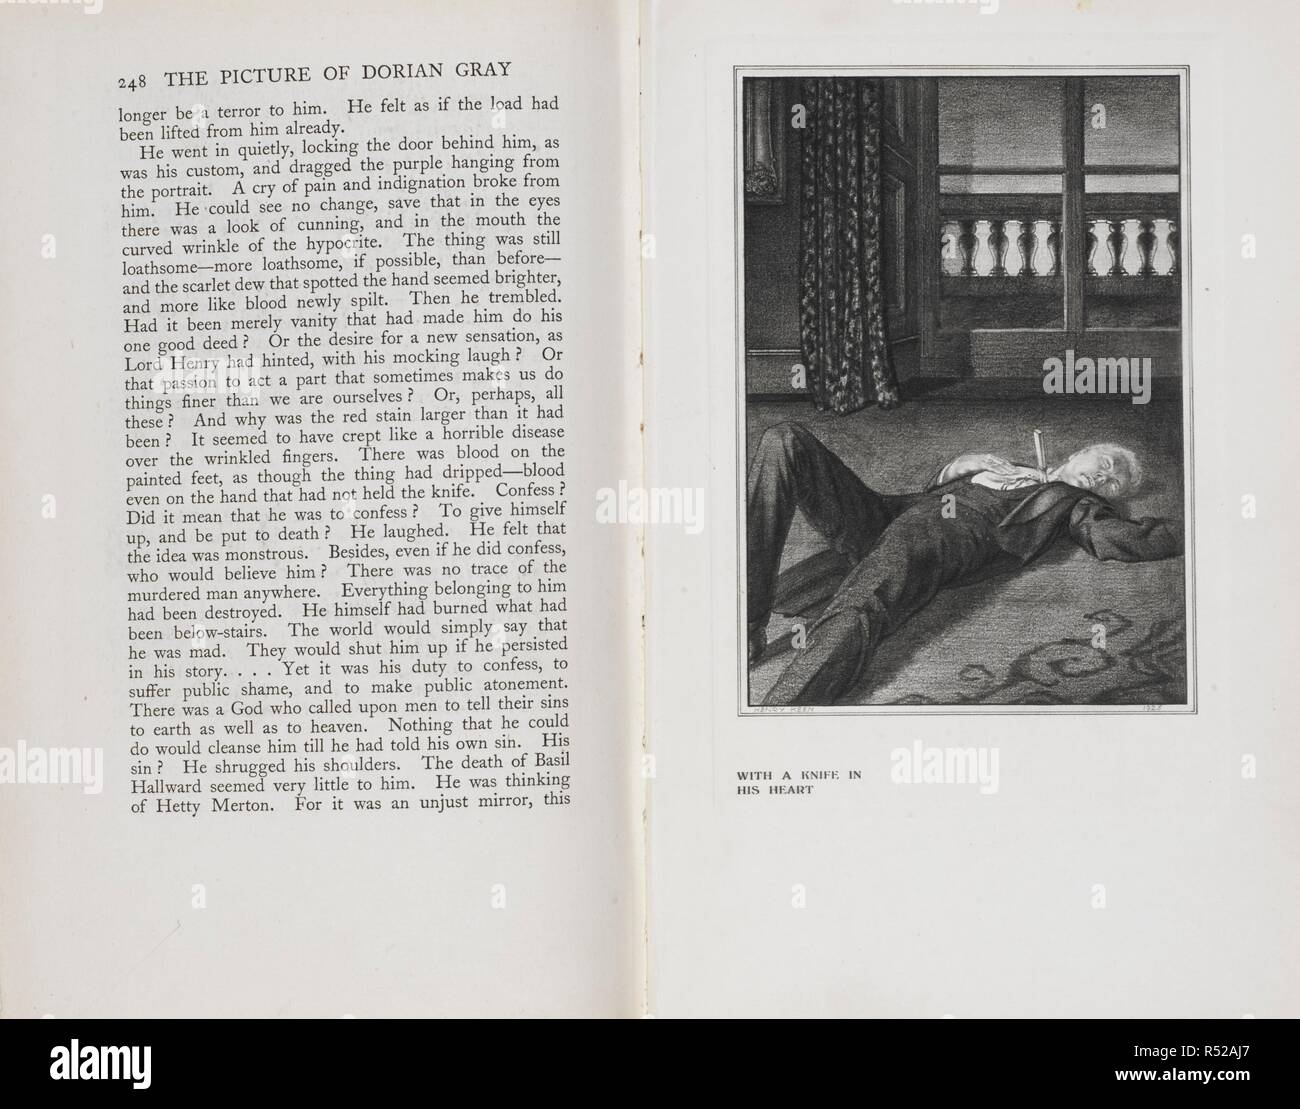 Page of the last chapter of the novel and an illustration showing the dead body of Dorian Gray. The Picture of Dorian Gray/ By Oscar Wilde ; with an introduction by Osbert Burdett ; authorized ed. with illustrations by Henry Keen. London: John Lane The Bodley Head; New York: Dodd, Mead and Co., 1925 Bungay, Suffolk: Richard Clay & Sons. Source: 012634.n.52 pages 248 and 249. - Stock Image